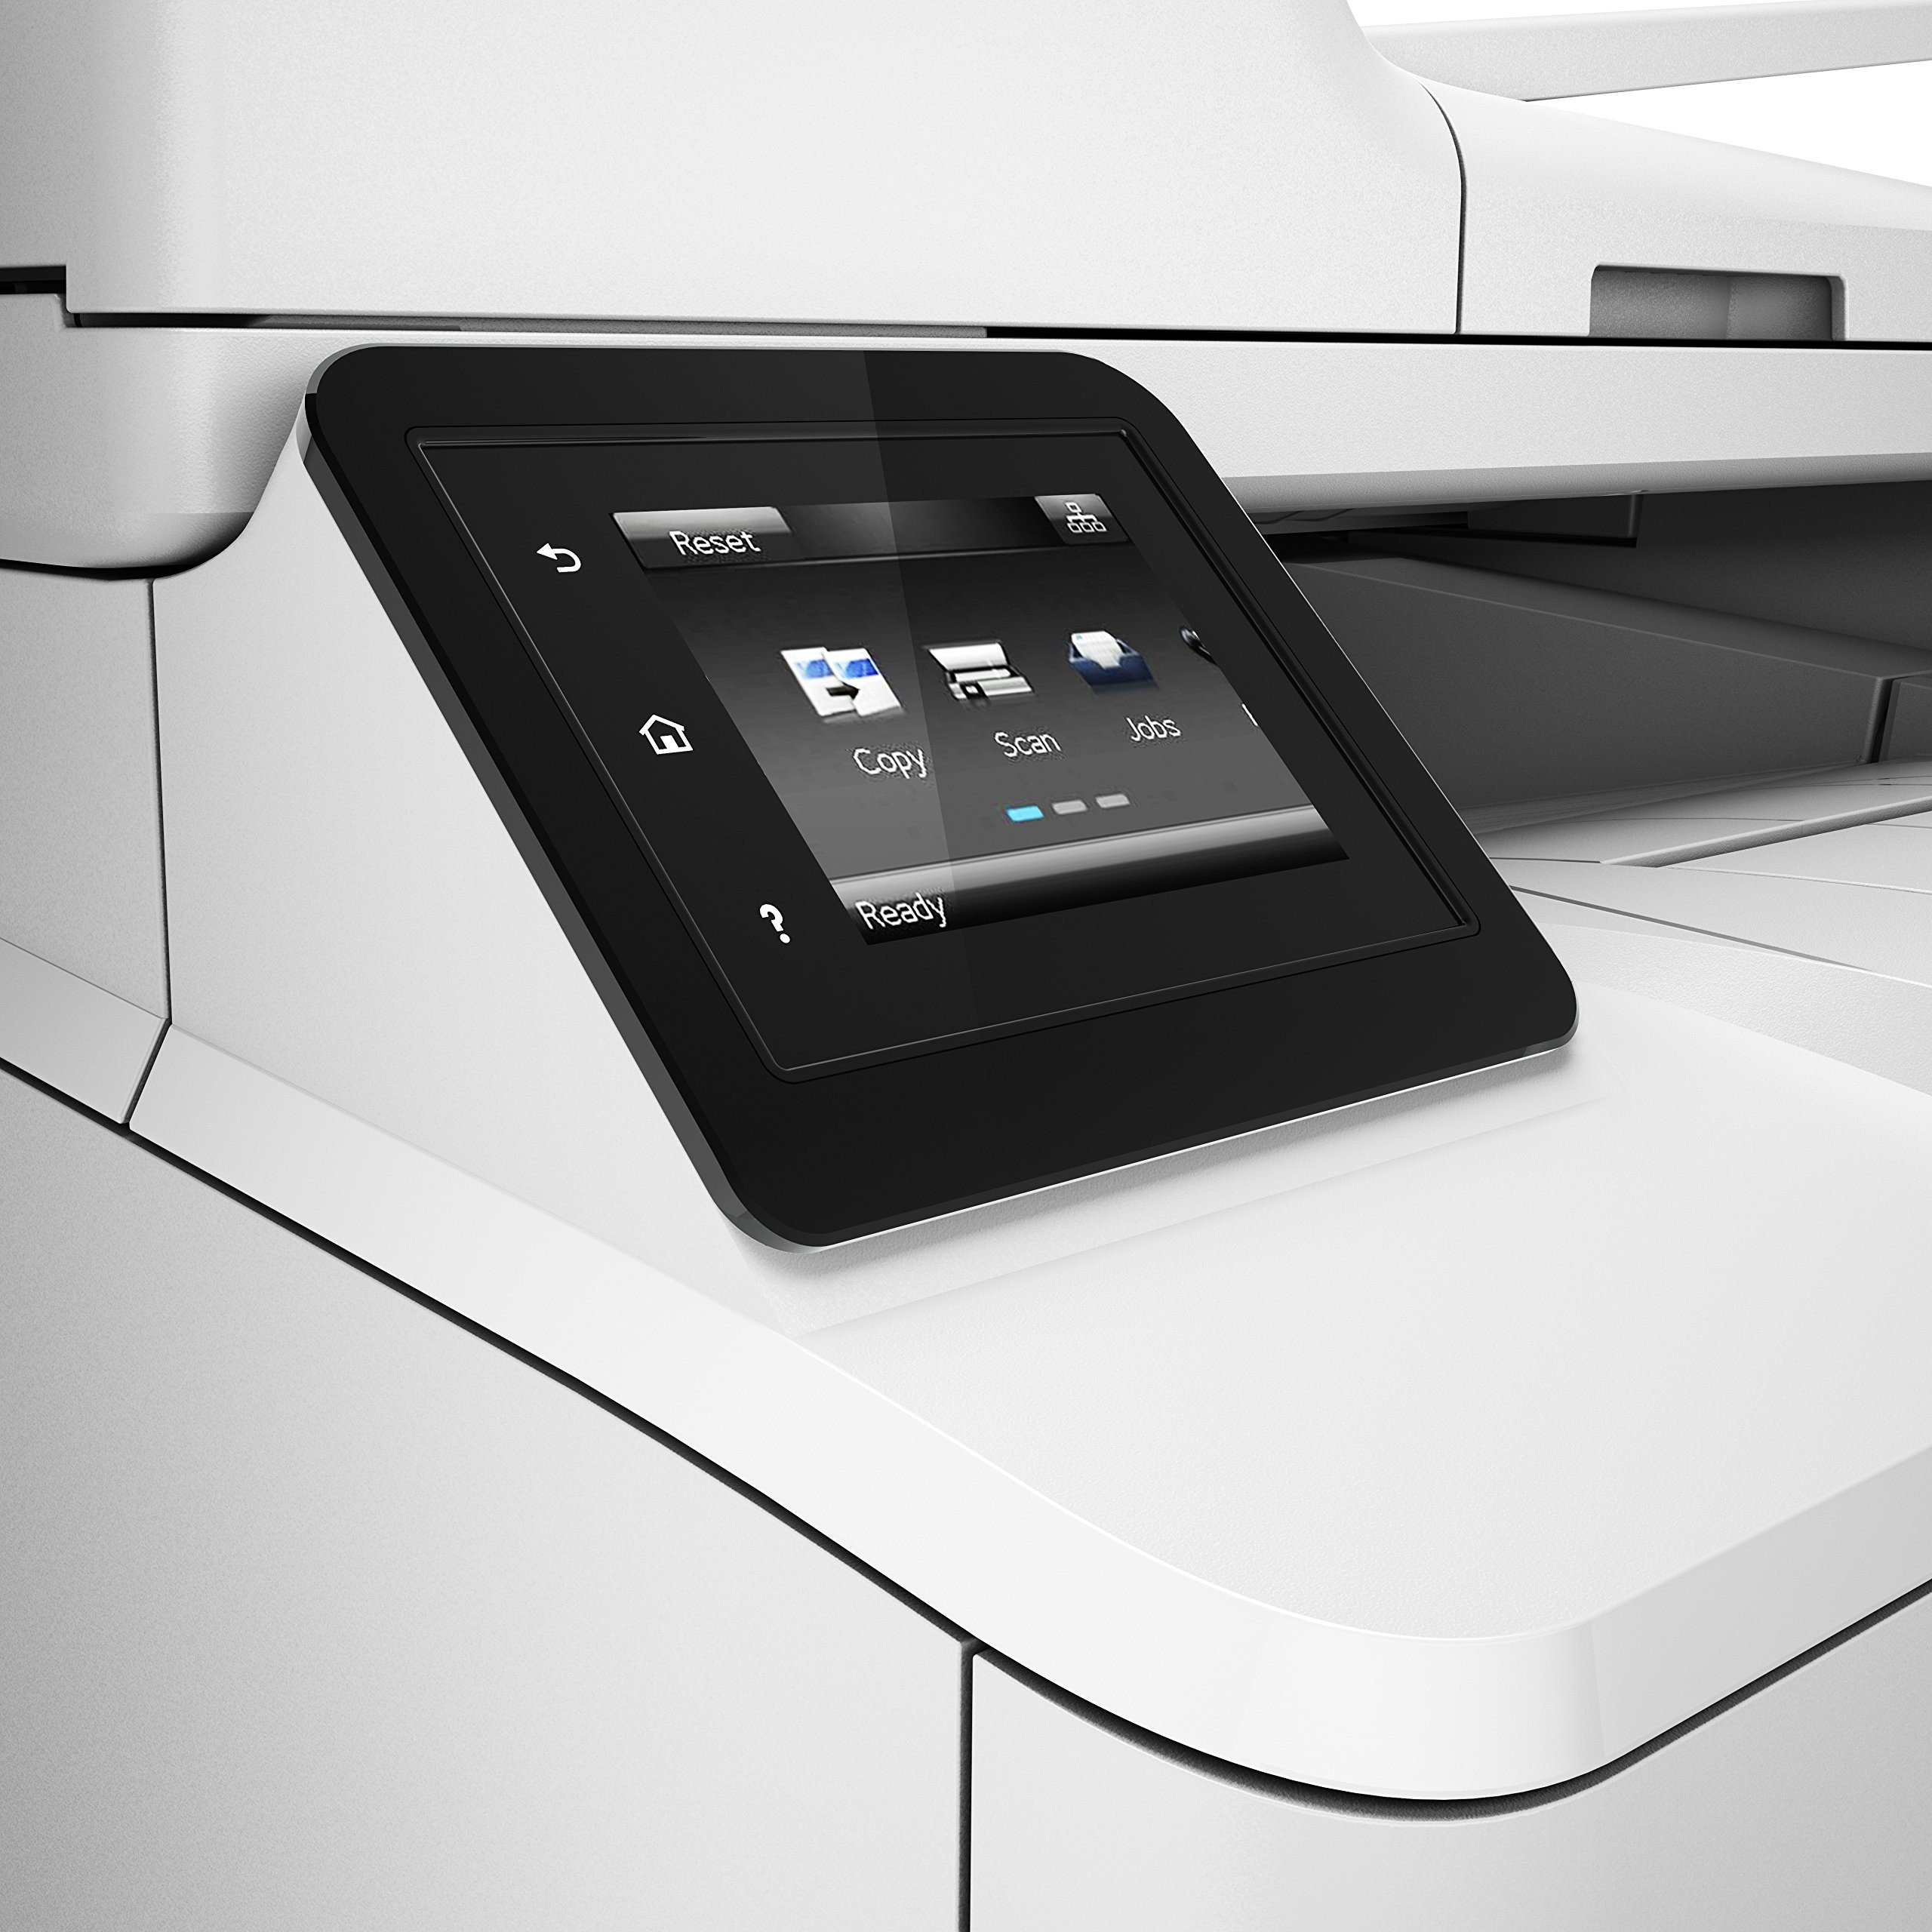 HP LaserJet Pro M227fdw All-in-One Wireless Laser Printer (G3Q75A). Replaces HP M225dw Laser Printer by HP (Image #5)